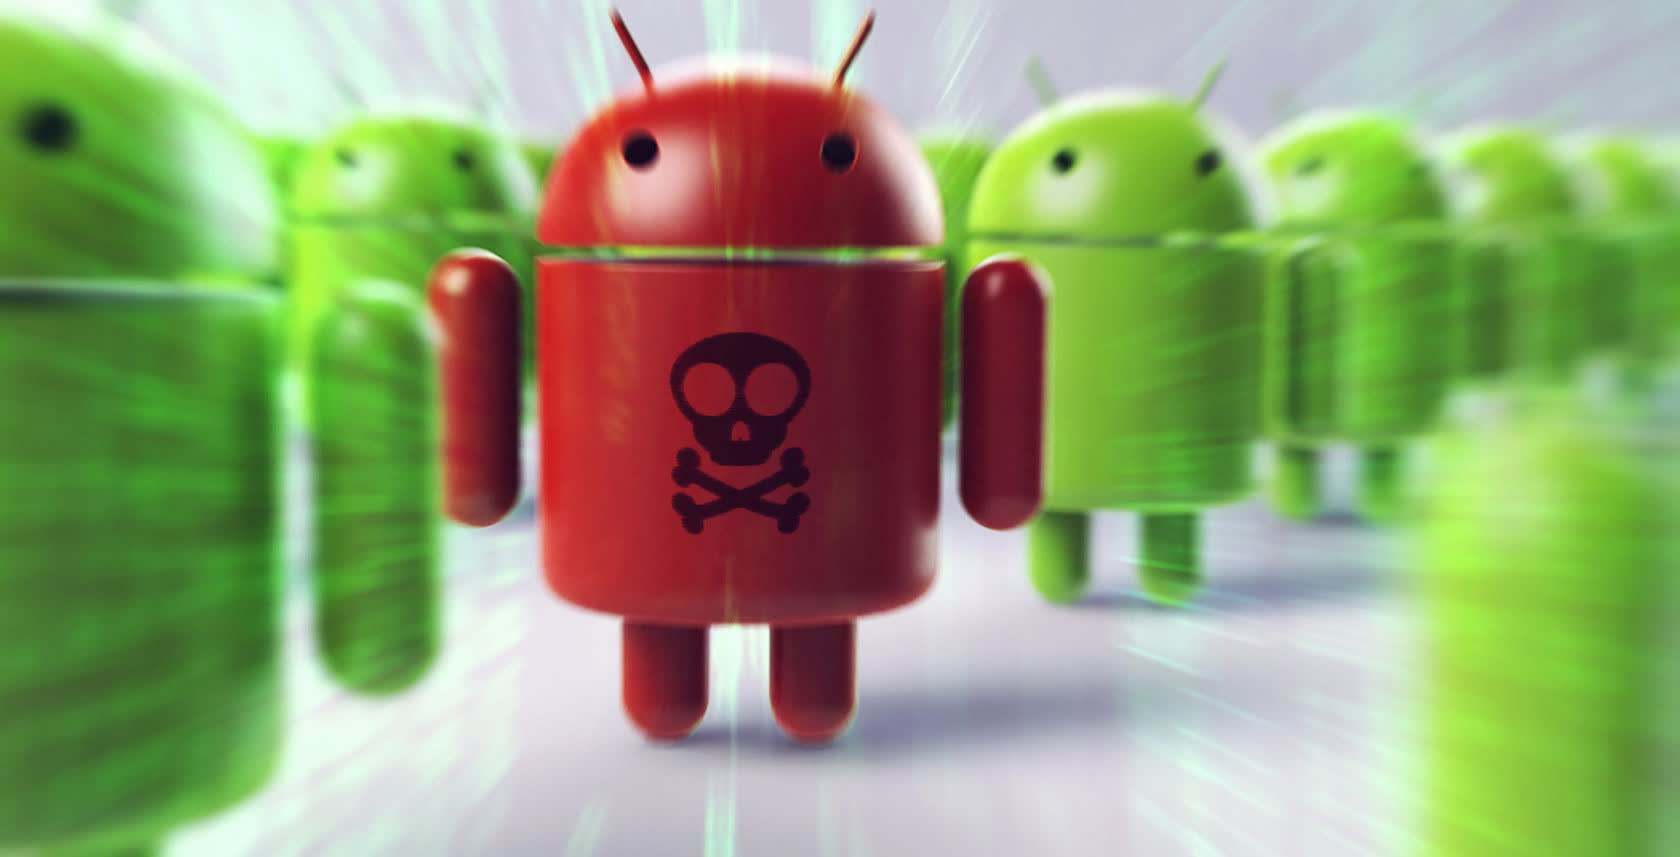 Nine apps with 5.8 million downloads kicked from Google Play store for stealing Facebook passwords